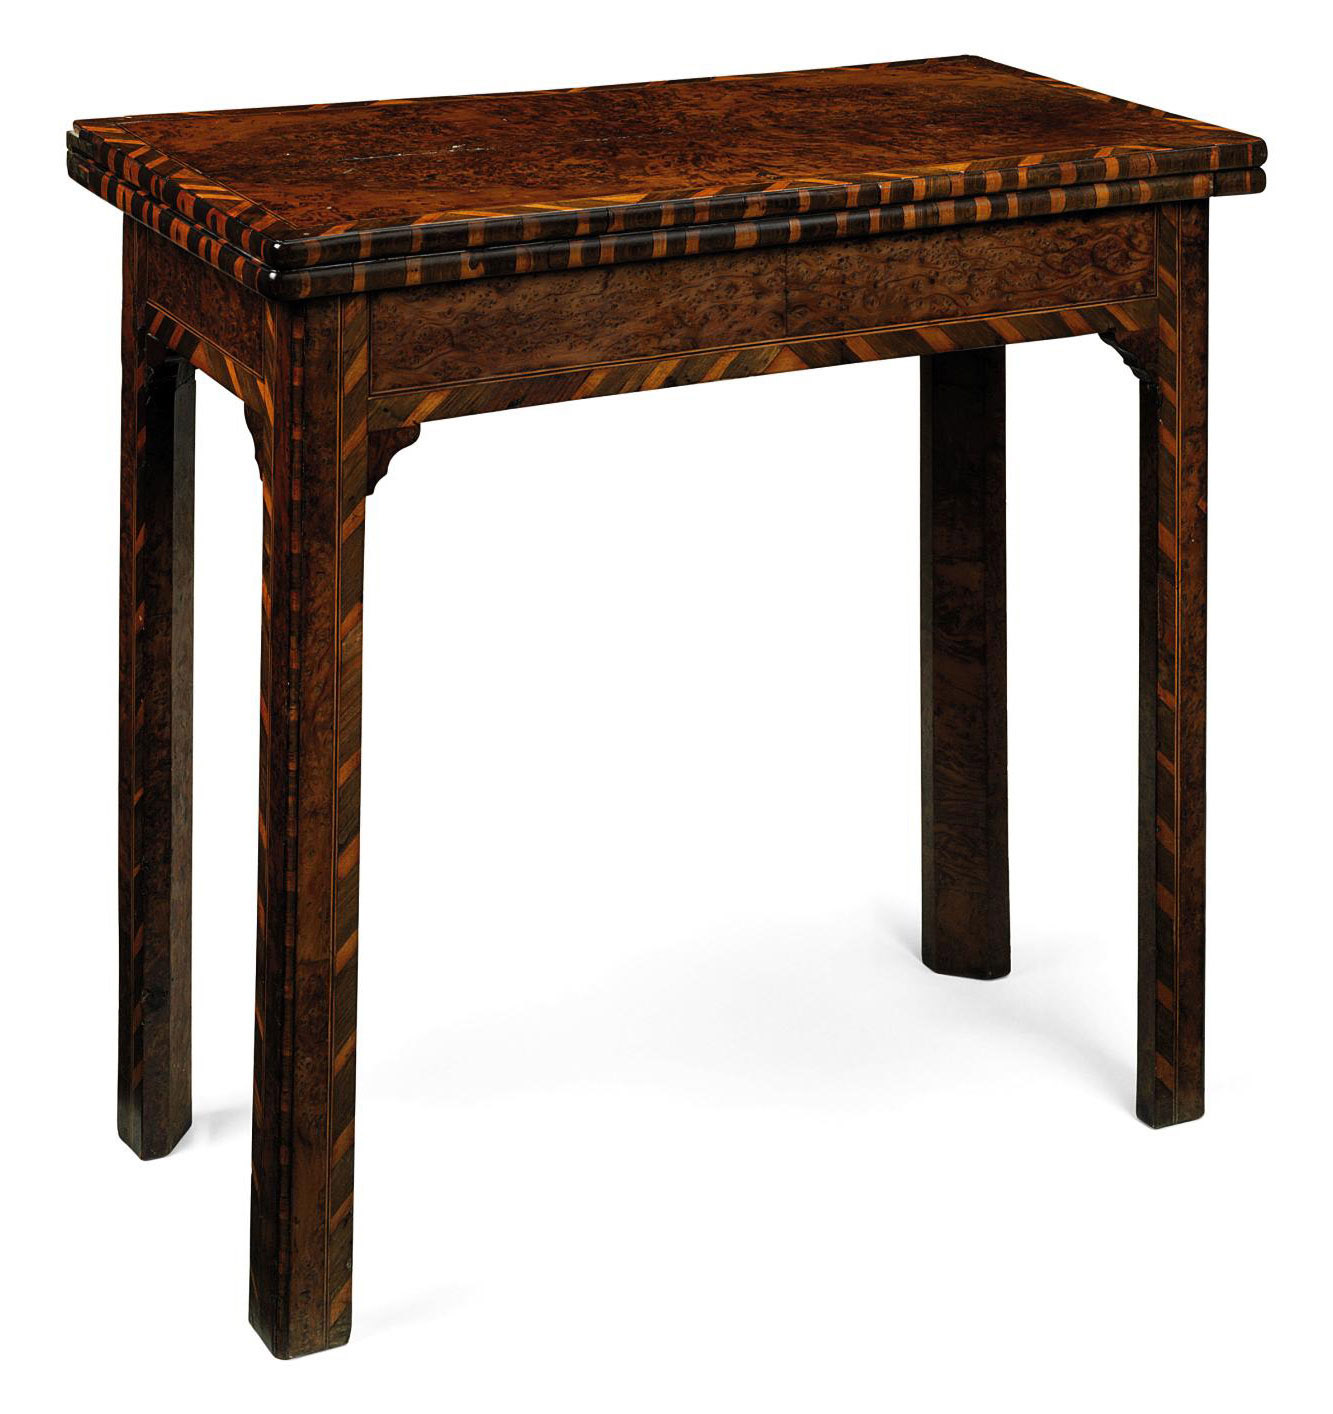 A GEORGE II BURR-YEWWOOD GATELEG-ACTION CARD TABLE